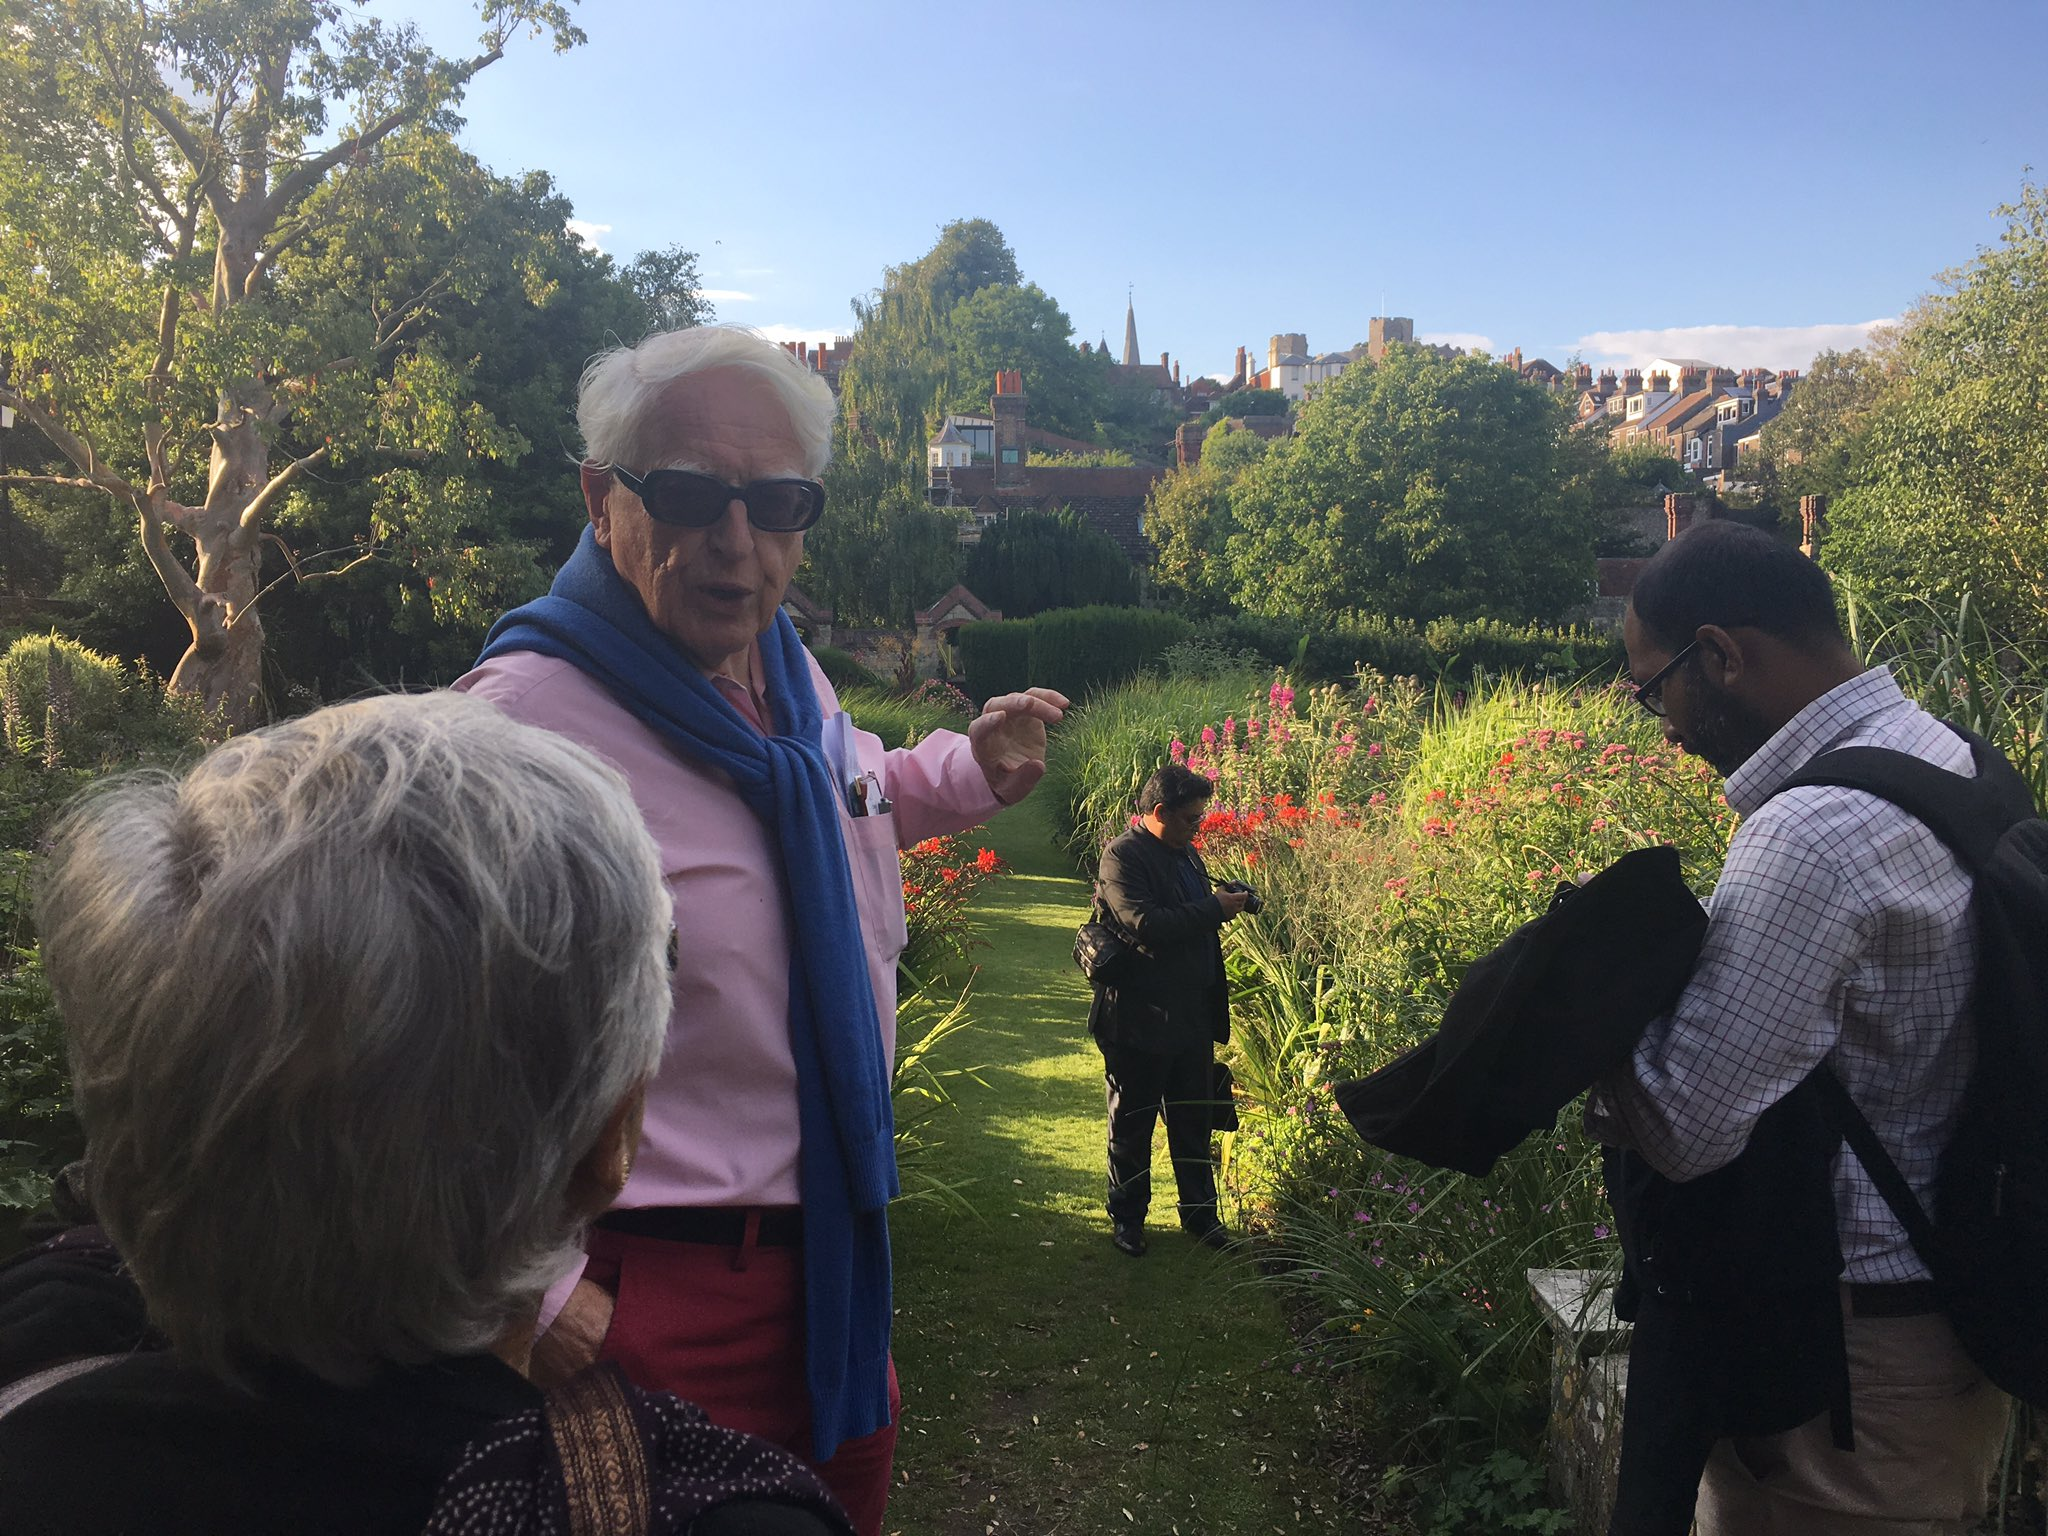 Sir Richard Jolly giving @IDS_UK #transformingnutrition students a tour of his home town Lewes. incredible evening! https://t.co/GezDUhU66g